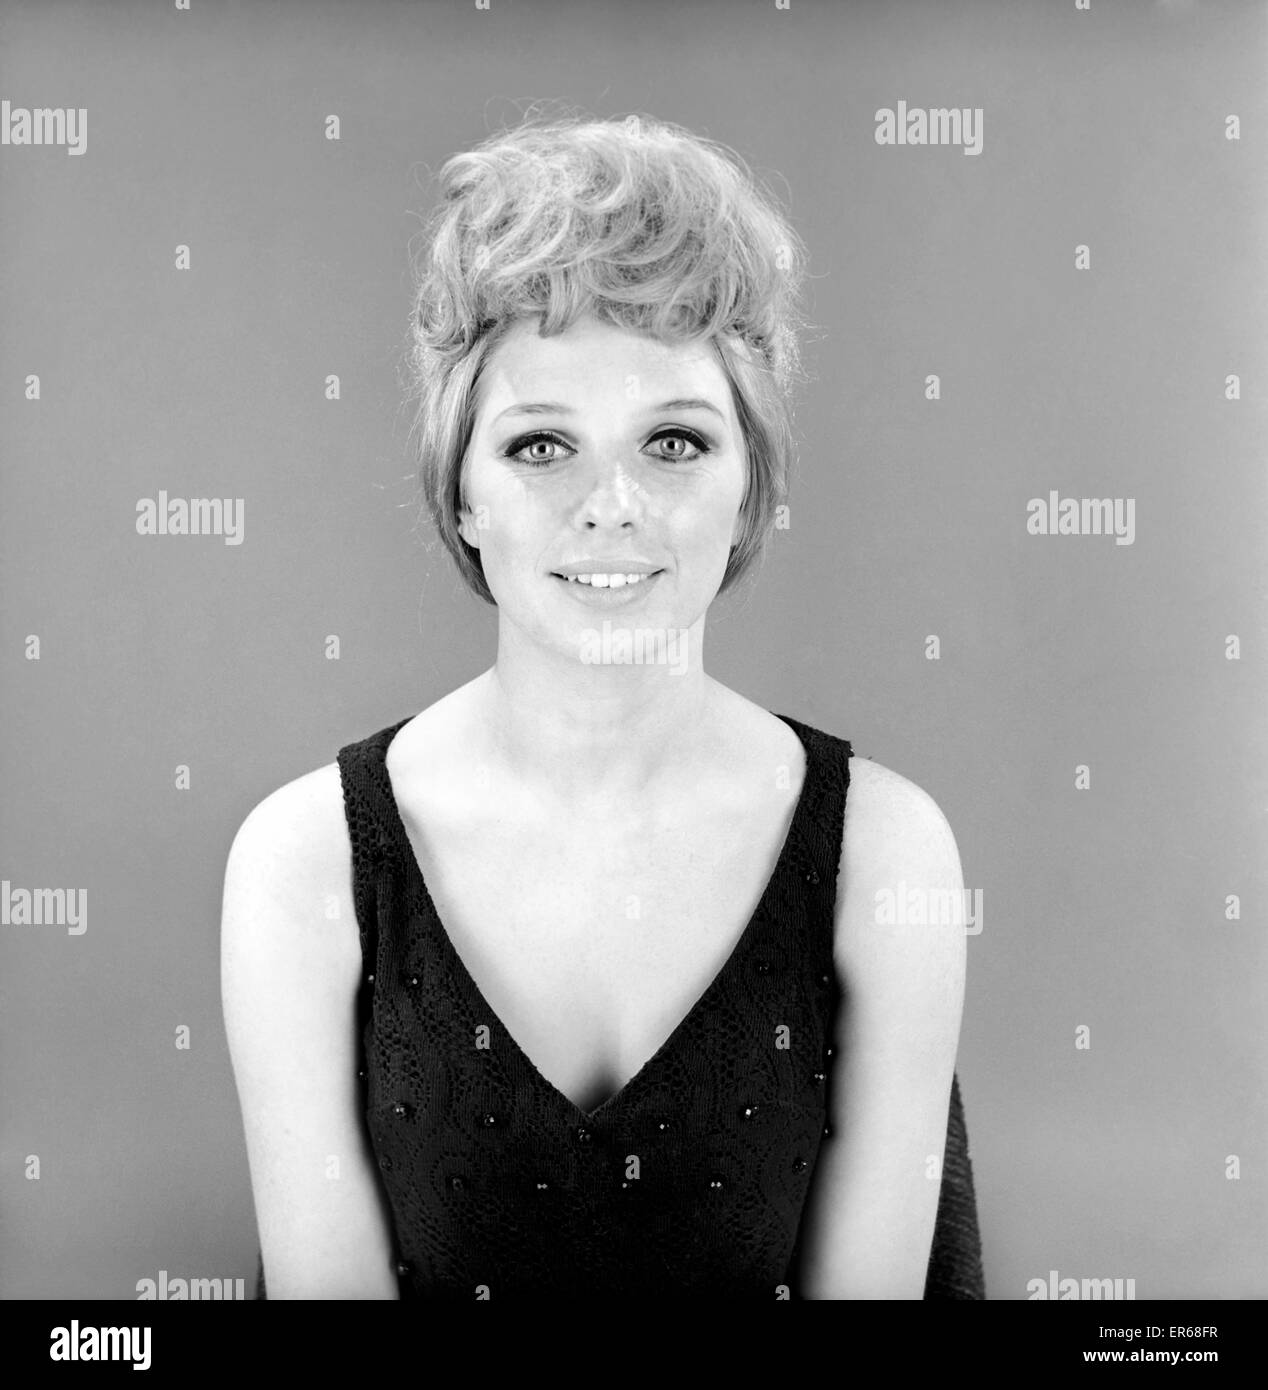 Fashion: Hair styles: Model wearing hair coil fashion item. 1966 B1925-005 - Stock Image